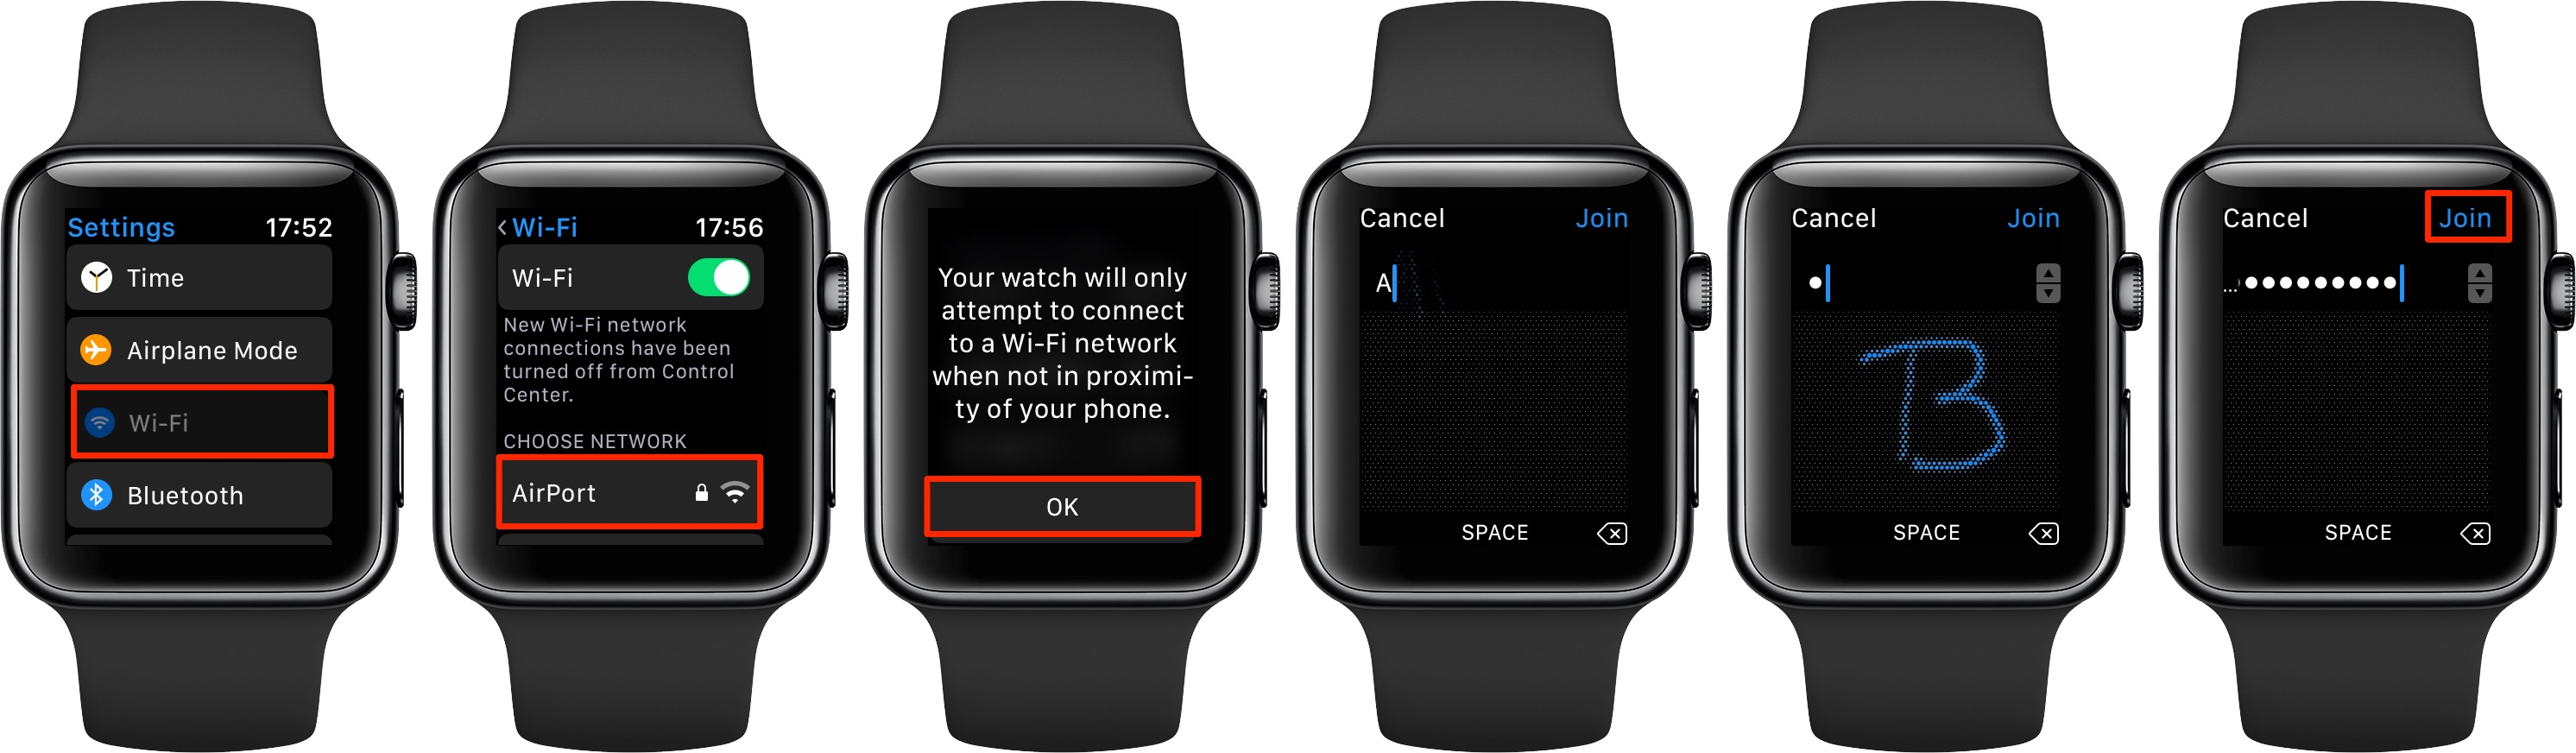 watchOS 5 lets you manually join a Wi-Fi network in Settings